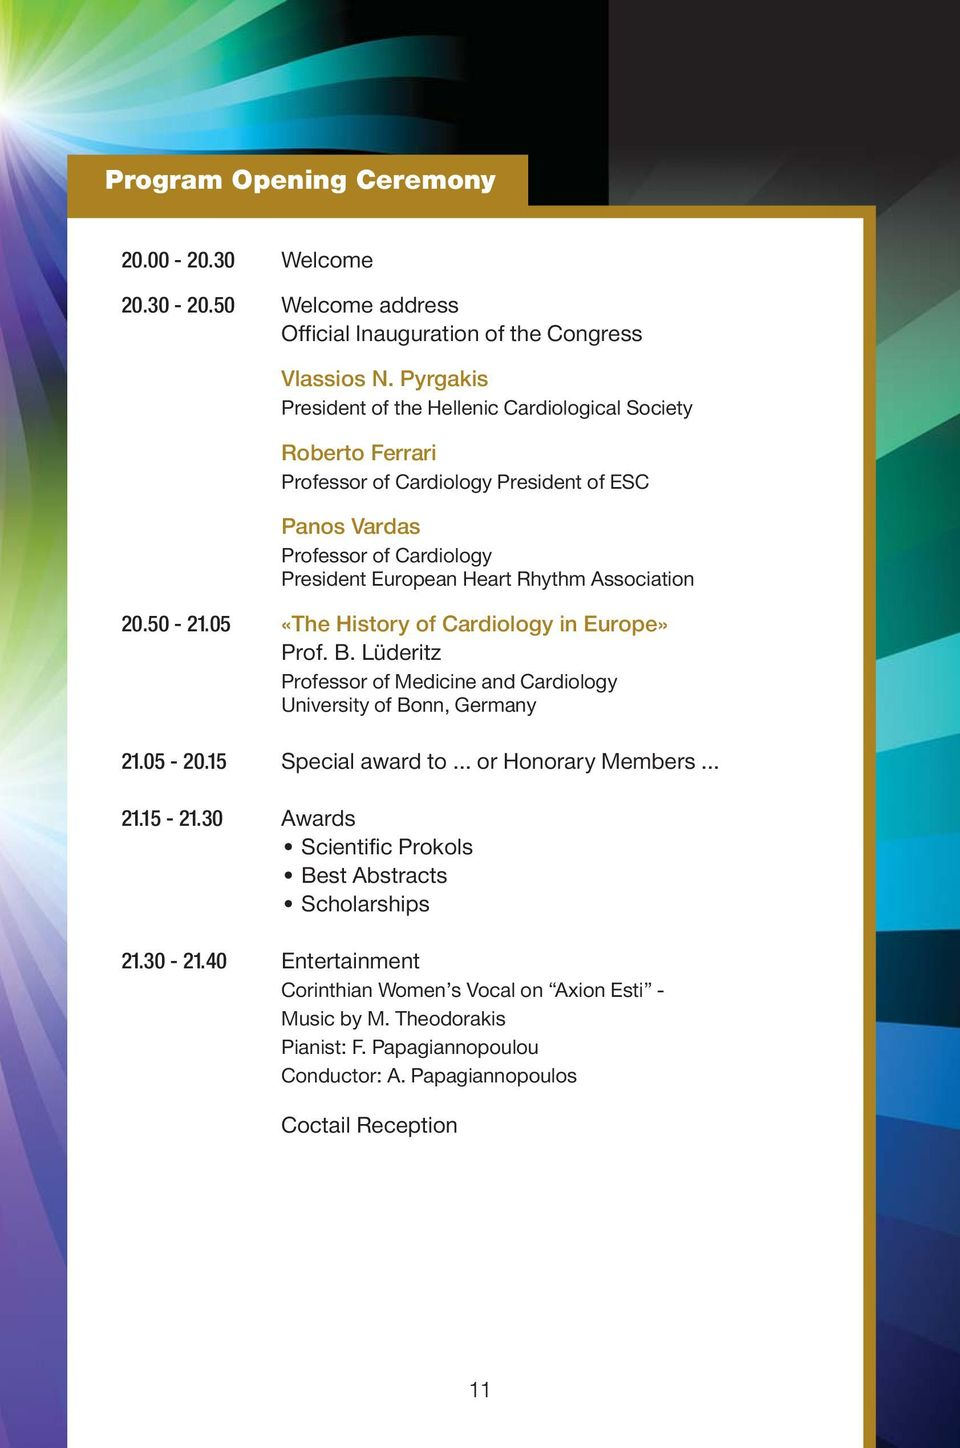 Association 20.50-21.05 «The History of Cardiology in Europe» Prof. B. Lüderitz Professor of Medicine and Cardiology University of Bonn, Germany 21.05-20.